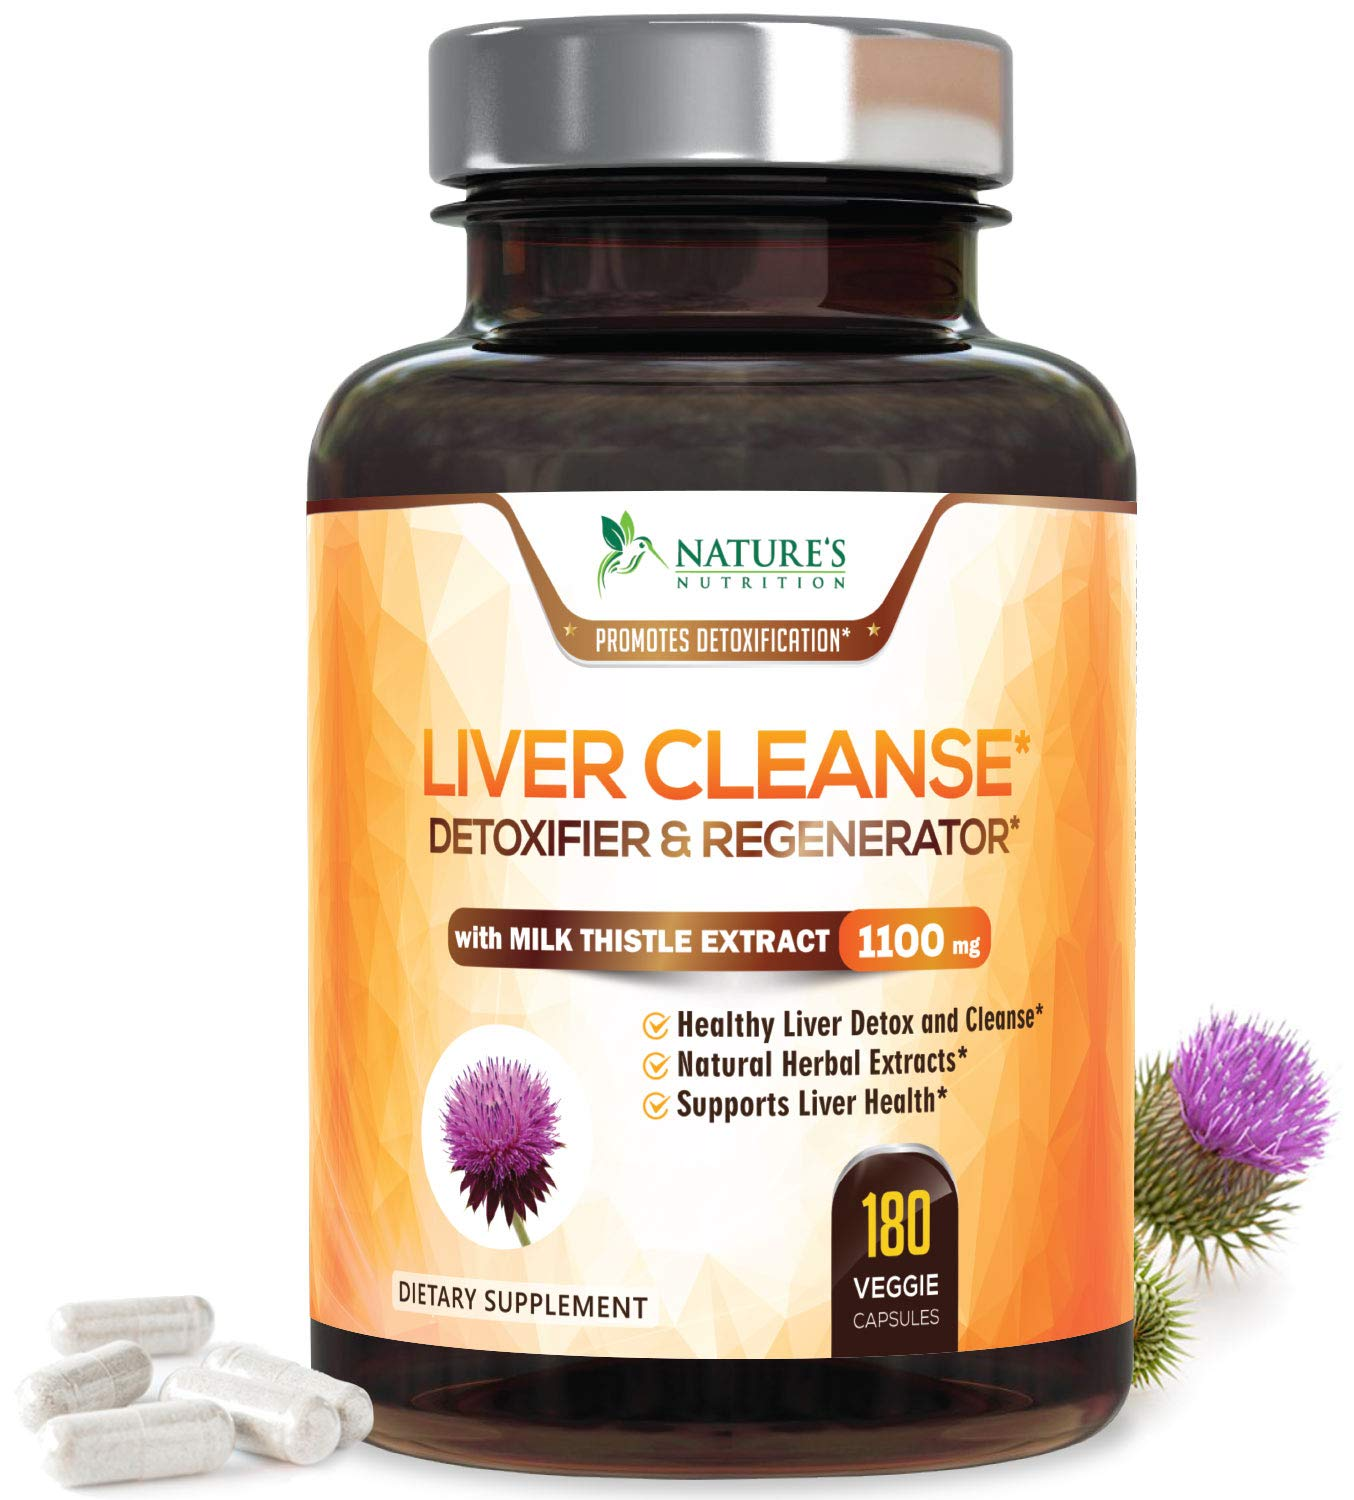 Liver Cleanse Detox & Repair Formula 1100mg - Highest Potency 22 Herbs, Made in USA, Best Milk Thistle Extract, Silymarin, Beet, Artichoke, Dandelion, Chicory, Support Supplement - 180 Capsules by Nature's Nutrition